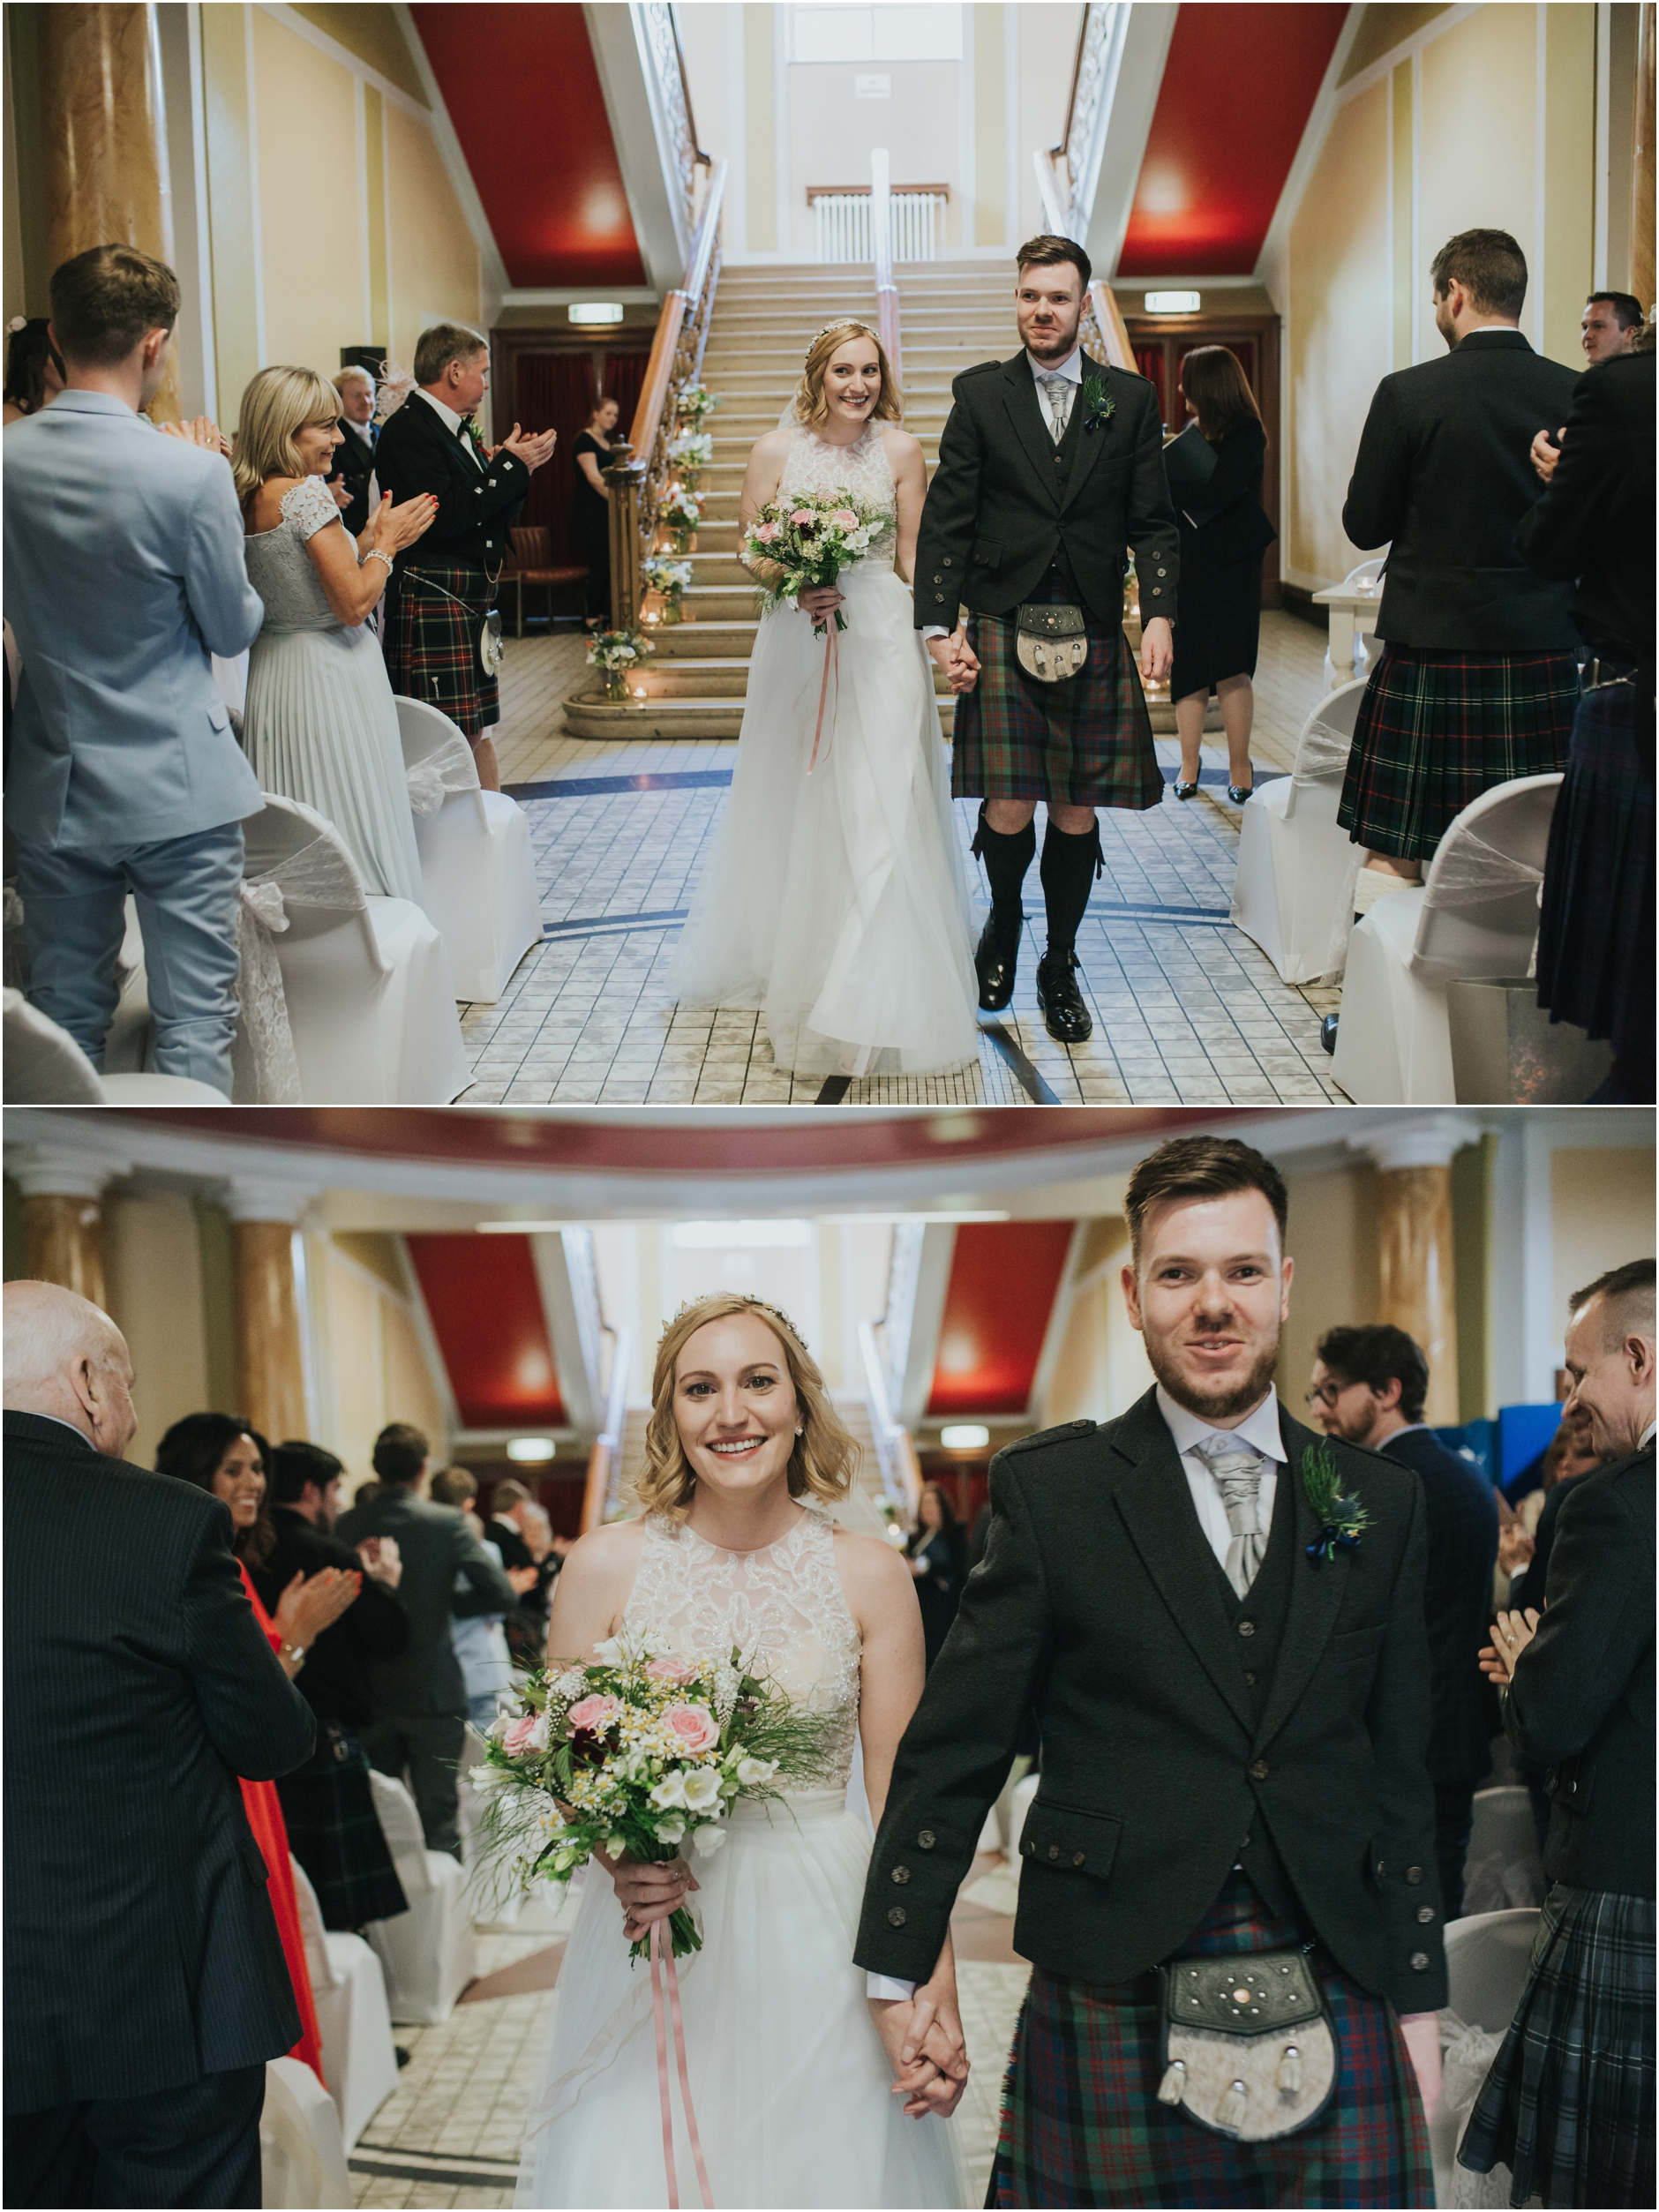 wedding celebration at thomas morton hall edinburgh leith theatre